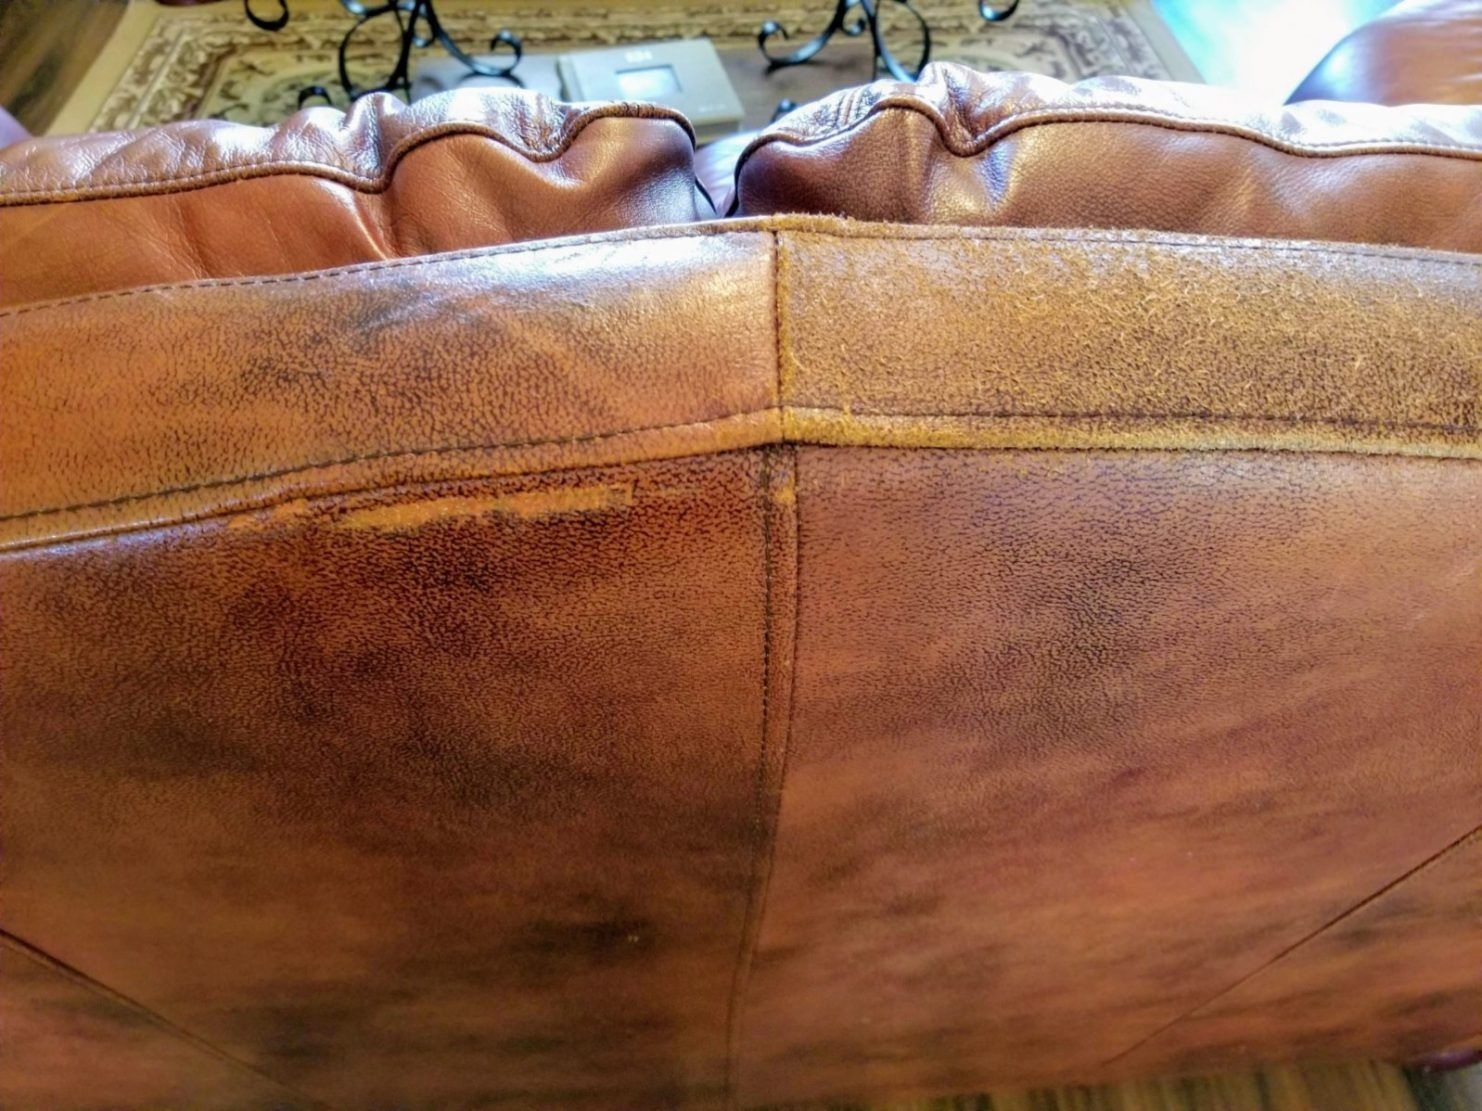 20190121 132921 In 2020 Cleaning Leather Furniture Leather Furniture Repair Diy Leather Repair